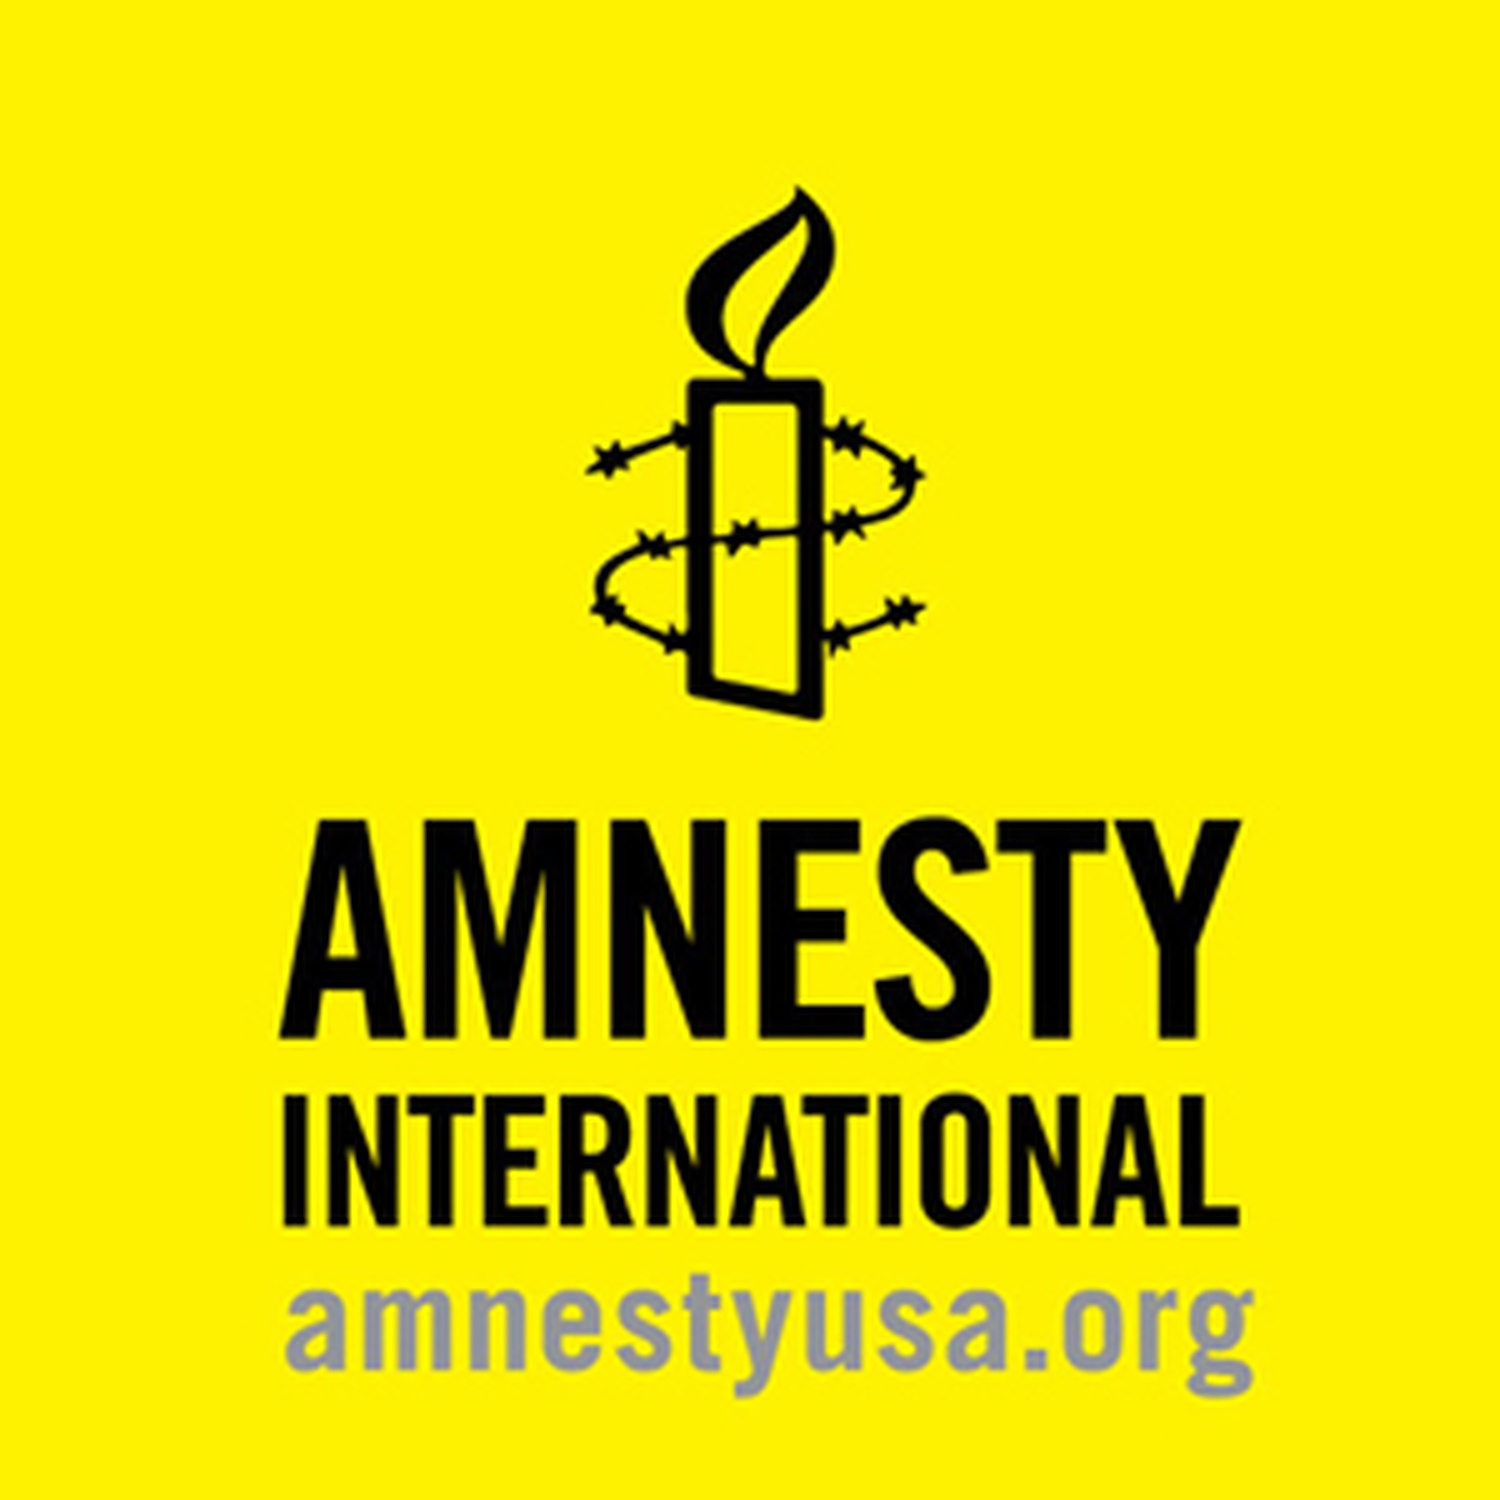 amnesty international in bric » amnesty international: save the palestinian poet and artist ashraf fayadh » save abdul basit - pakistan » stop the execution of rodney reed.